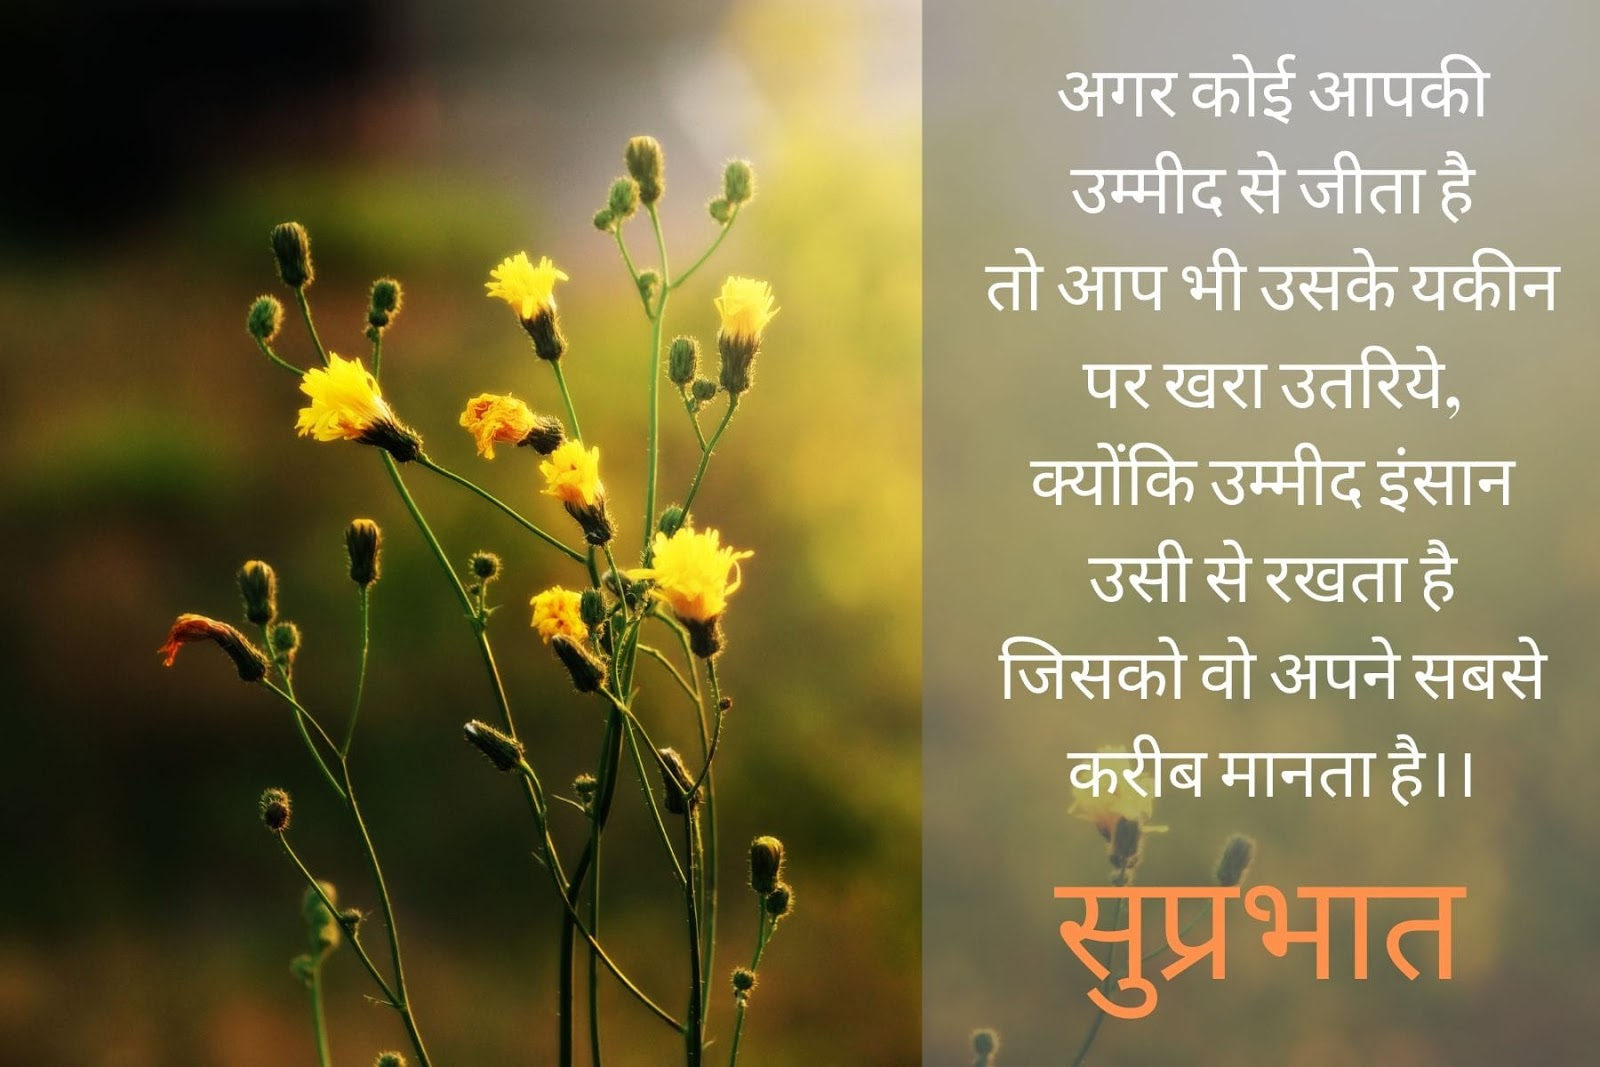 Best Good Morning Quotes, Message, And Wishes In Hindi